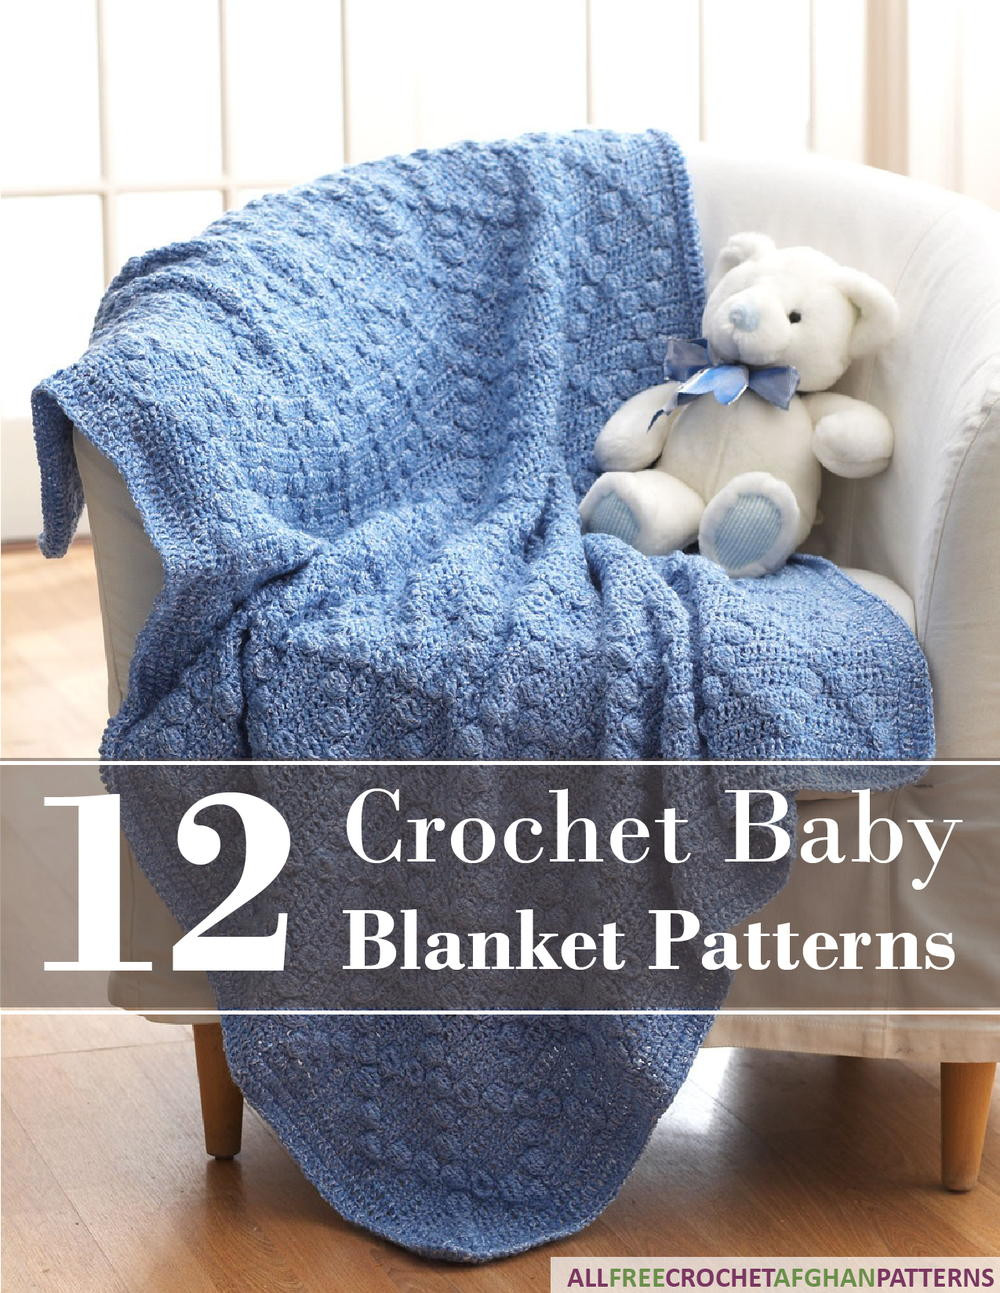 Baby Boy Crochet Blanket Patterns Elegant 12 Crochet Baby Blanket Patterns Free Ebook Of Baby Boy Crochet Blanket Patterns Beautiful Marvelous Monkey Blankets Free Crochet Patterns